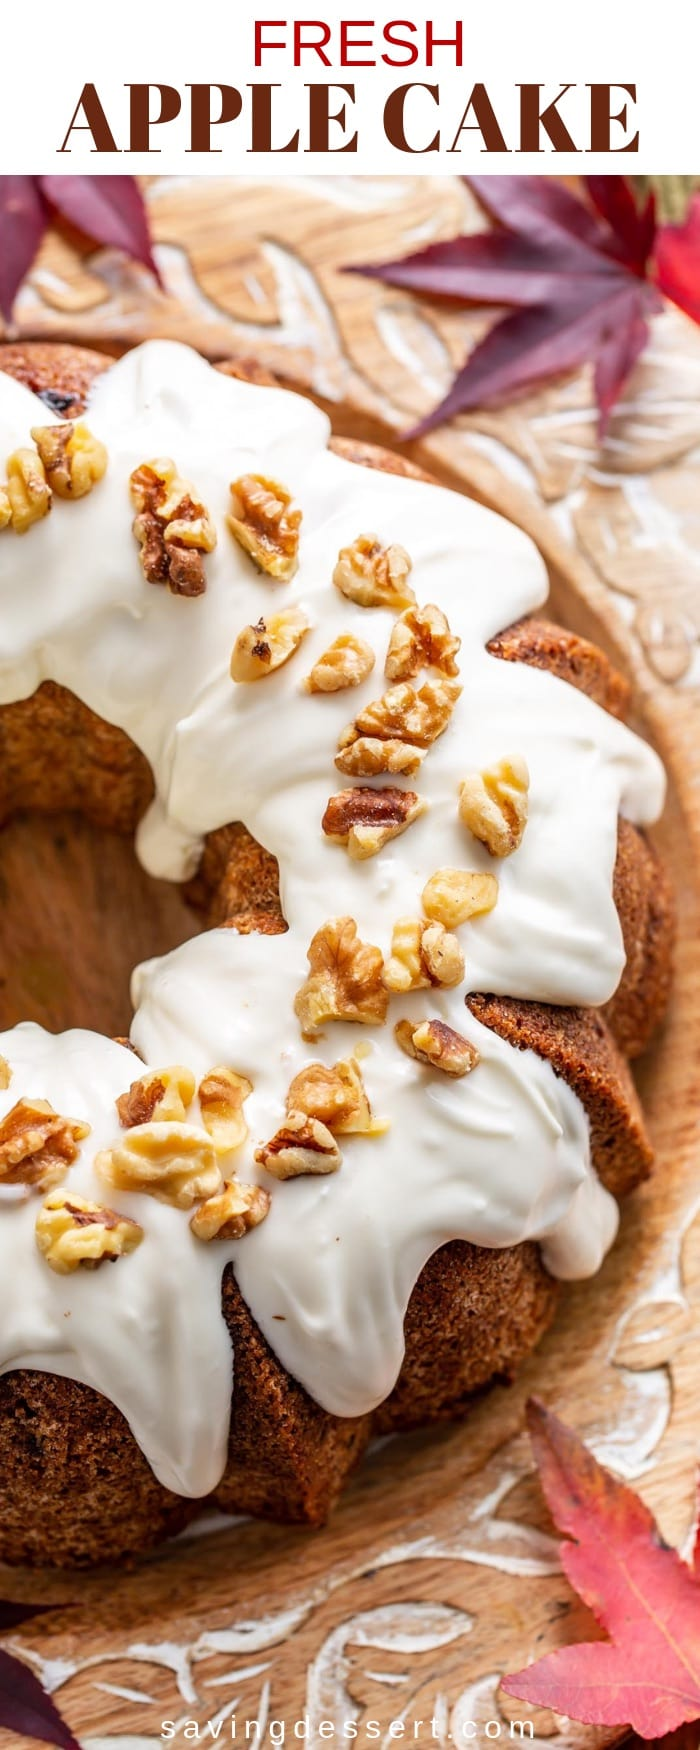 Everybody loves a Fresh Apple Cake loaded with a generous helping of cinnamon, nuts and apples. This cake has a fantastic moist and tender texture, and a lightly crisp exterior. This heirloom recipe has been a family favorite for generations and isa delicious Autumn treat!#savingroomfordessert #applebundtcake #applecake #applecakerecipe #apple #bundt #baking #bundtcake